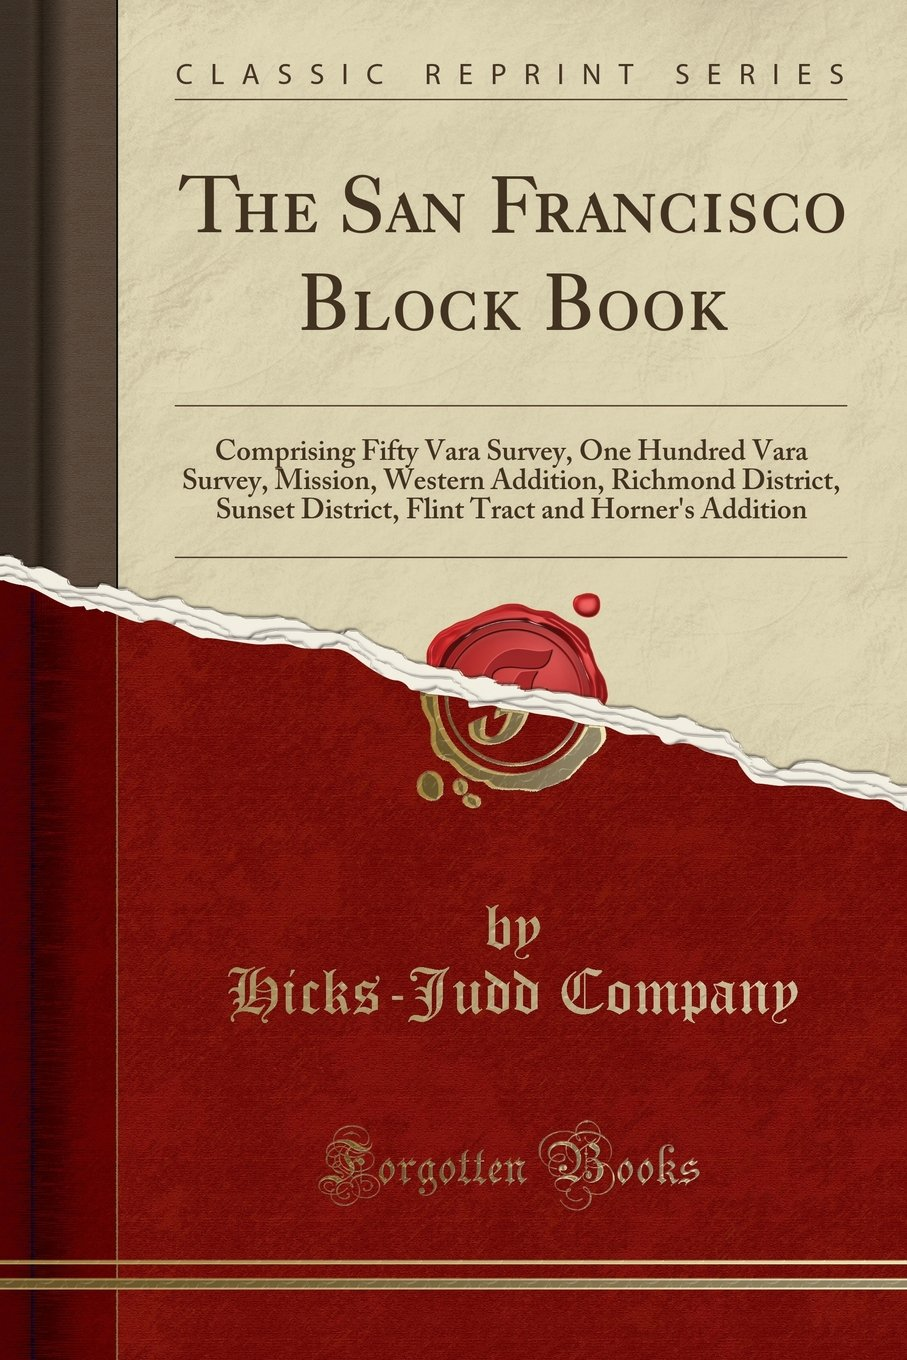 The San Francisco Block Book: Comprising Fifty Vara Survey, One Hundred Vara Survey, Mission, Western Addition, Richmond District, Sunset District, Flint Tract and Horner's Addition (Classic Reprint) ebook